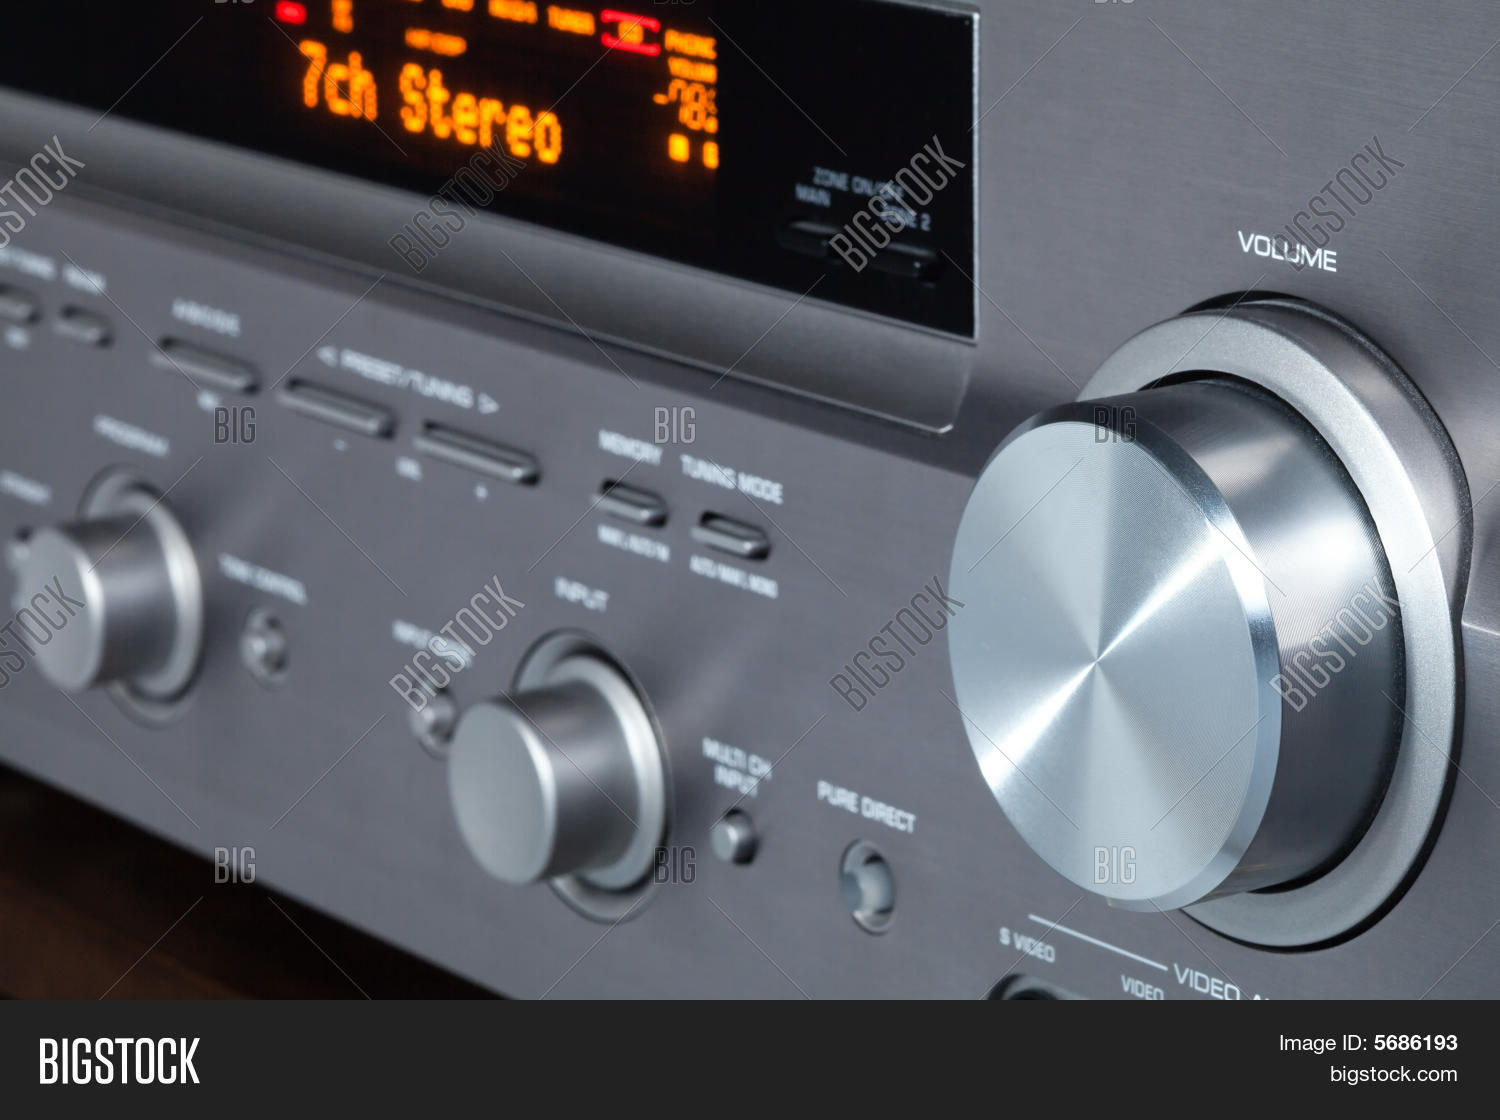 acoustic,aluminum,amp,amplifier,appliance,audio,av,buttons,cinema,close-up,component,display,dvd,electric,electronic,end,entertainment,equipment,film,hd,hi-fi,high,home,home theater,knobs,lcd,light,metal,modern,movie,movie theater,music,play,player,receiver,shiny,silver,sound,steel,stereo,surround,tech,technology,theater,titan,titanium,tuner,video,volume